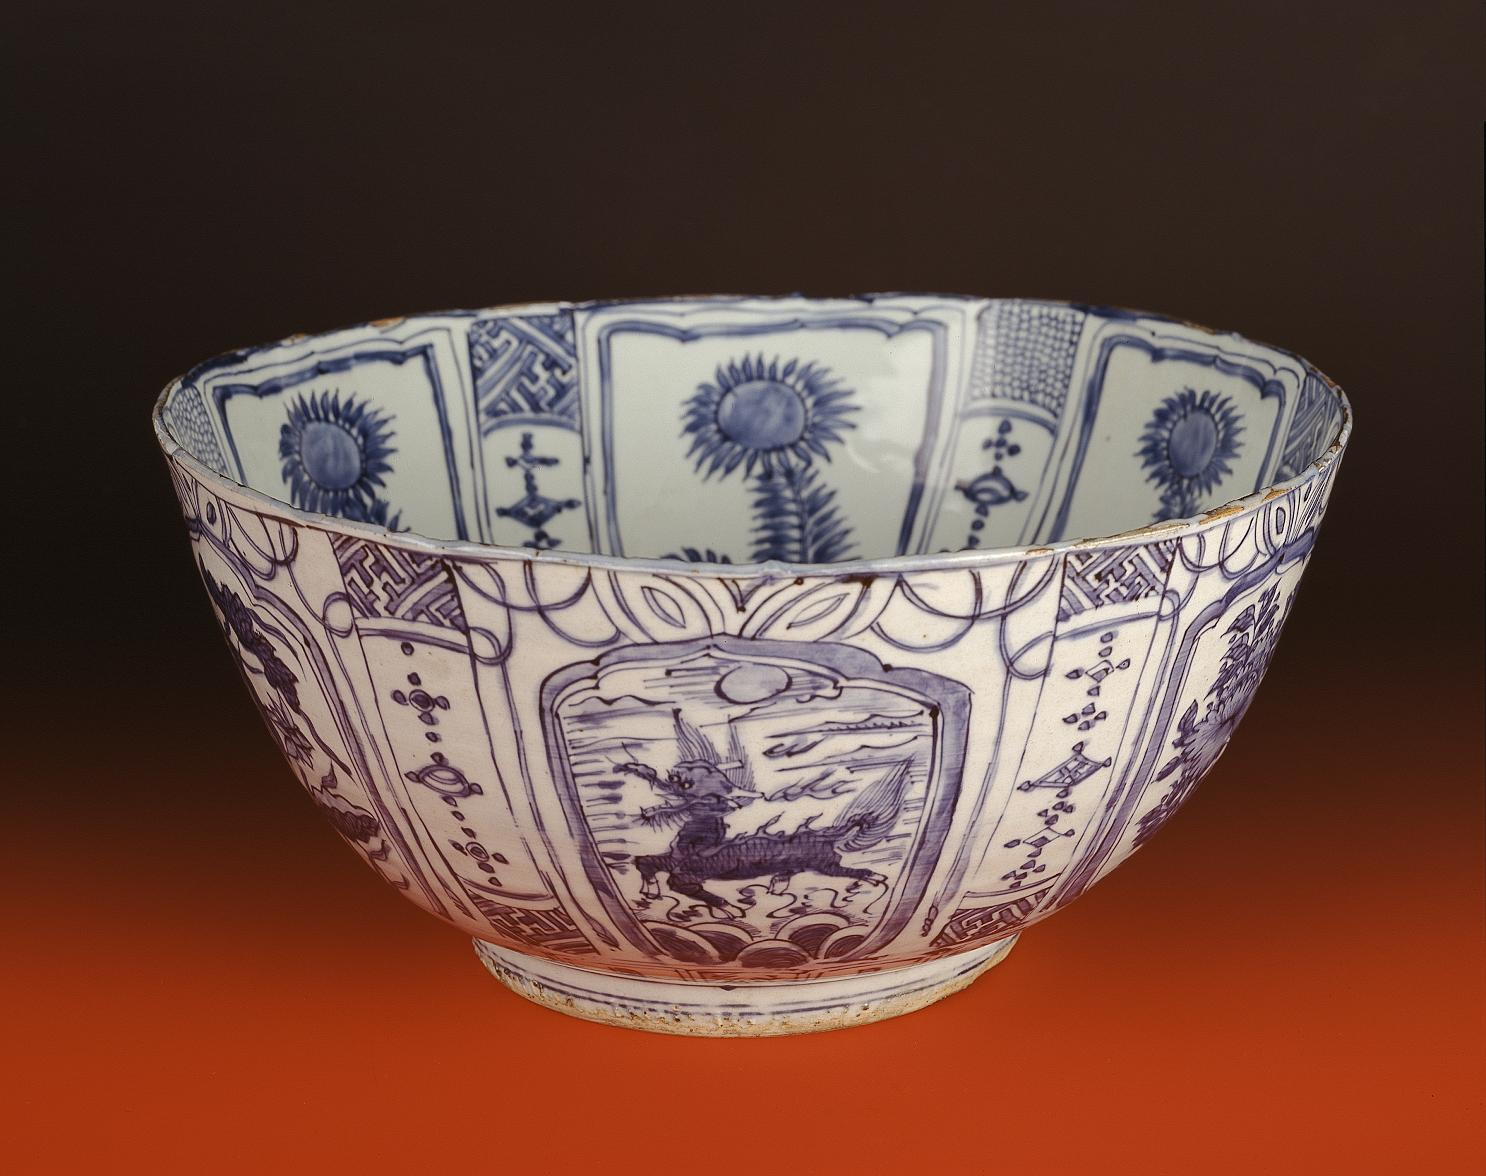 Large Chinese blue and white kraak porcelain bowl, Ming dynasty